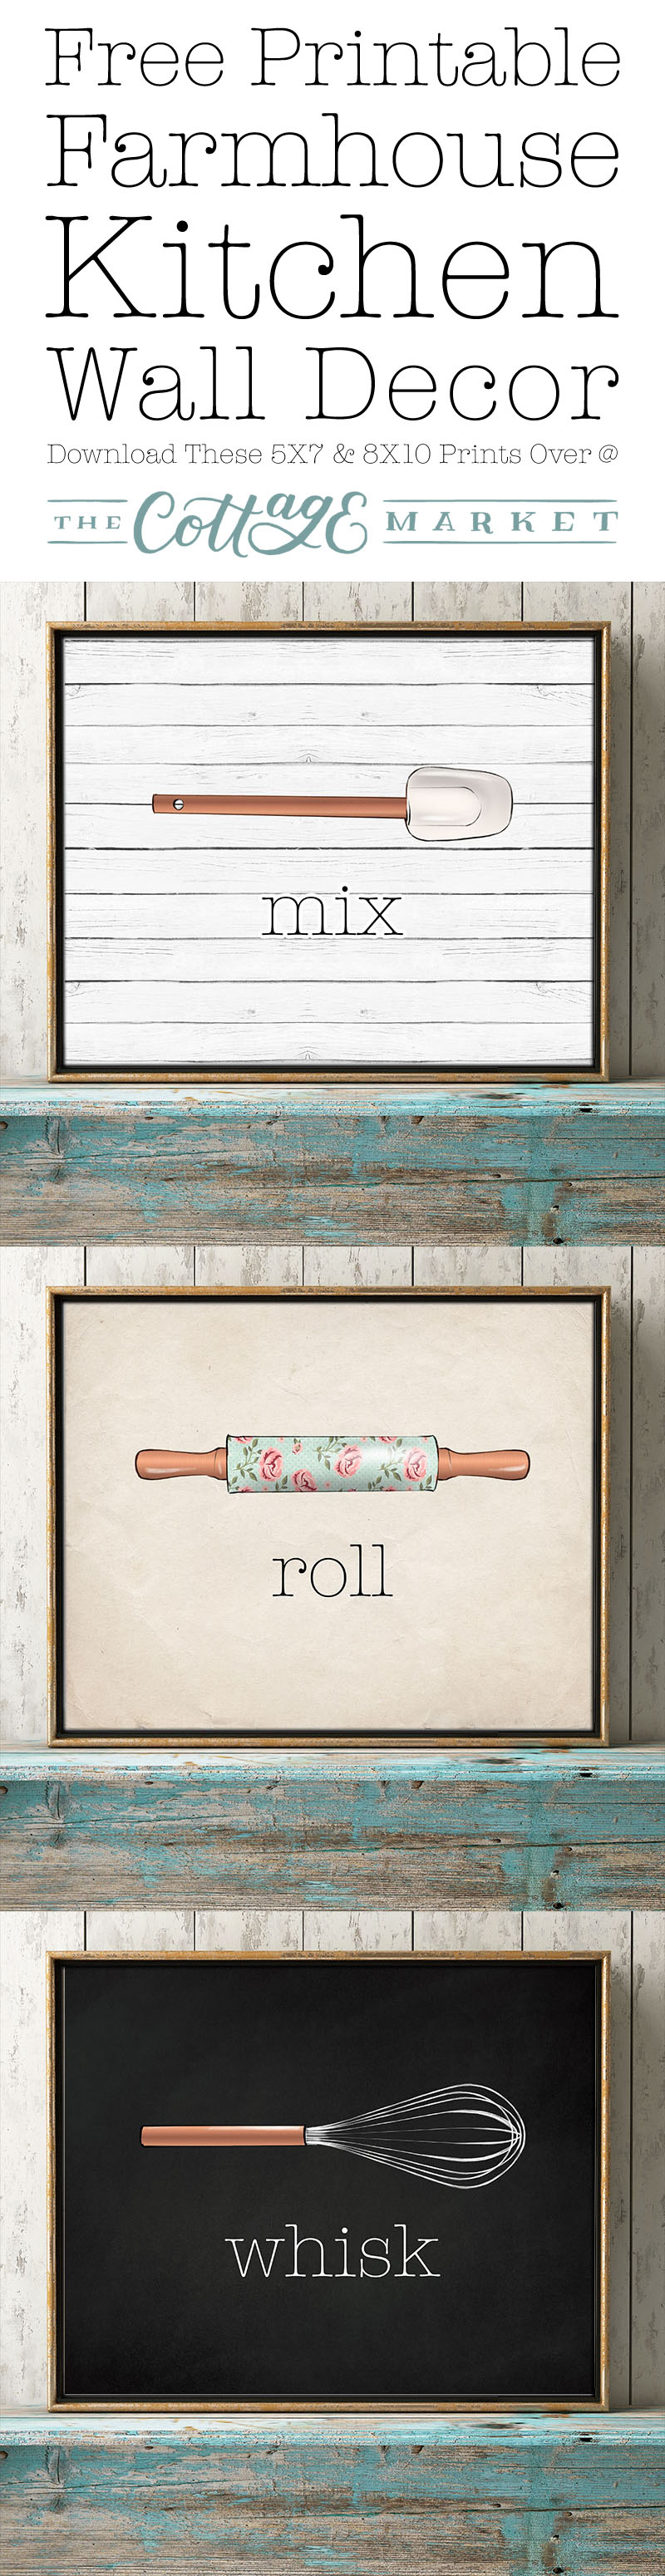 These free kitchen printables make great wall decor pieces.